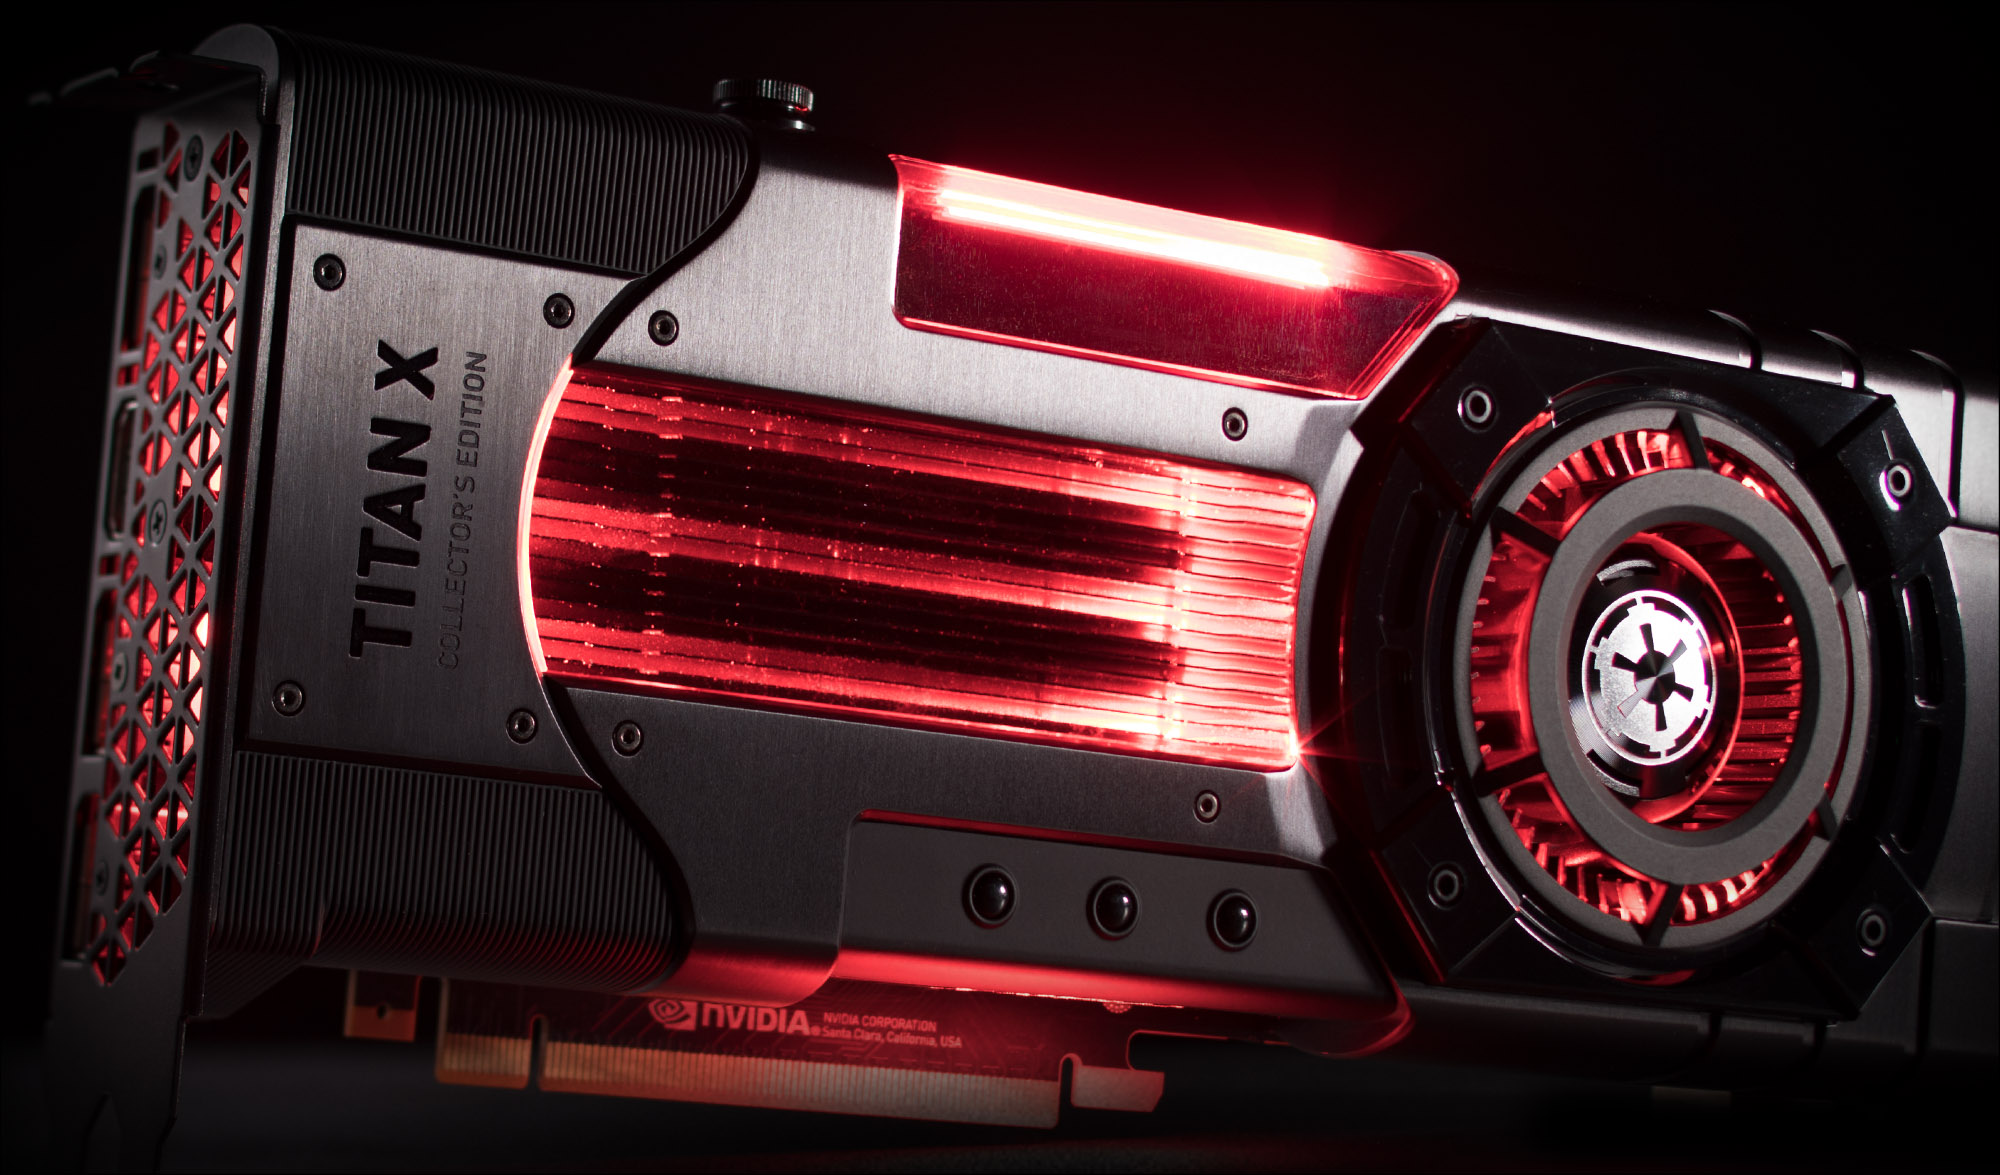 nvidia-titan-xp-ce-star-wars-galactic-empire-gallery-02.jpg